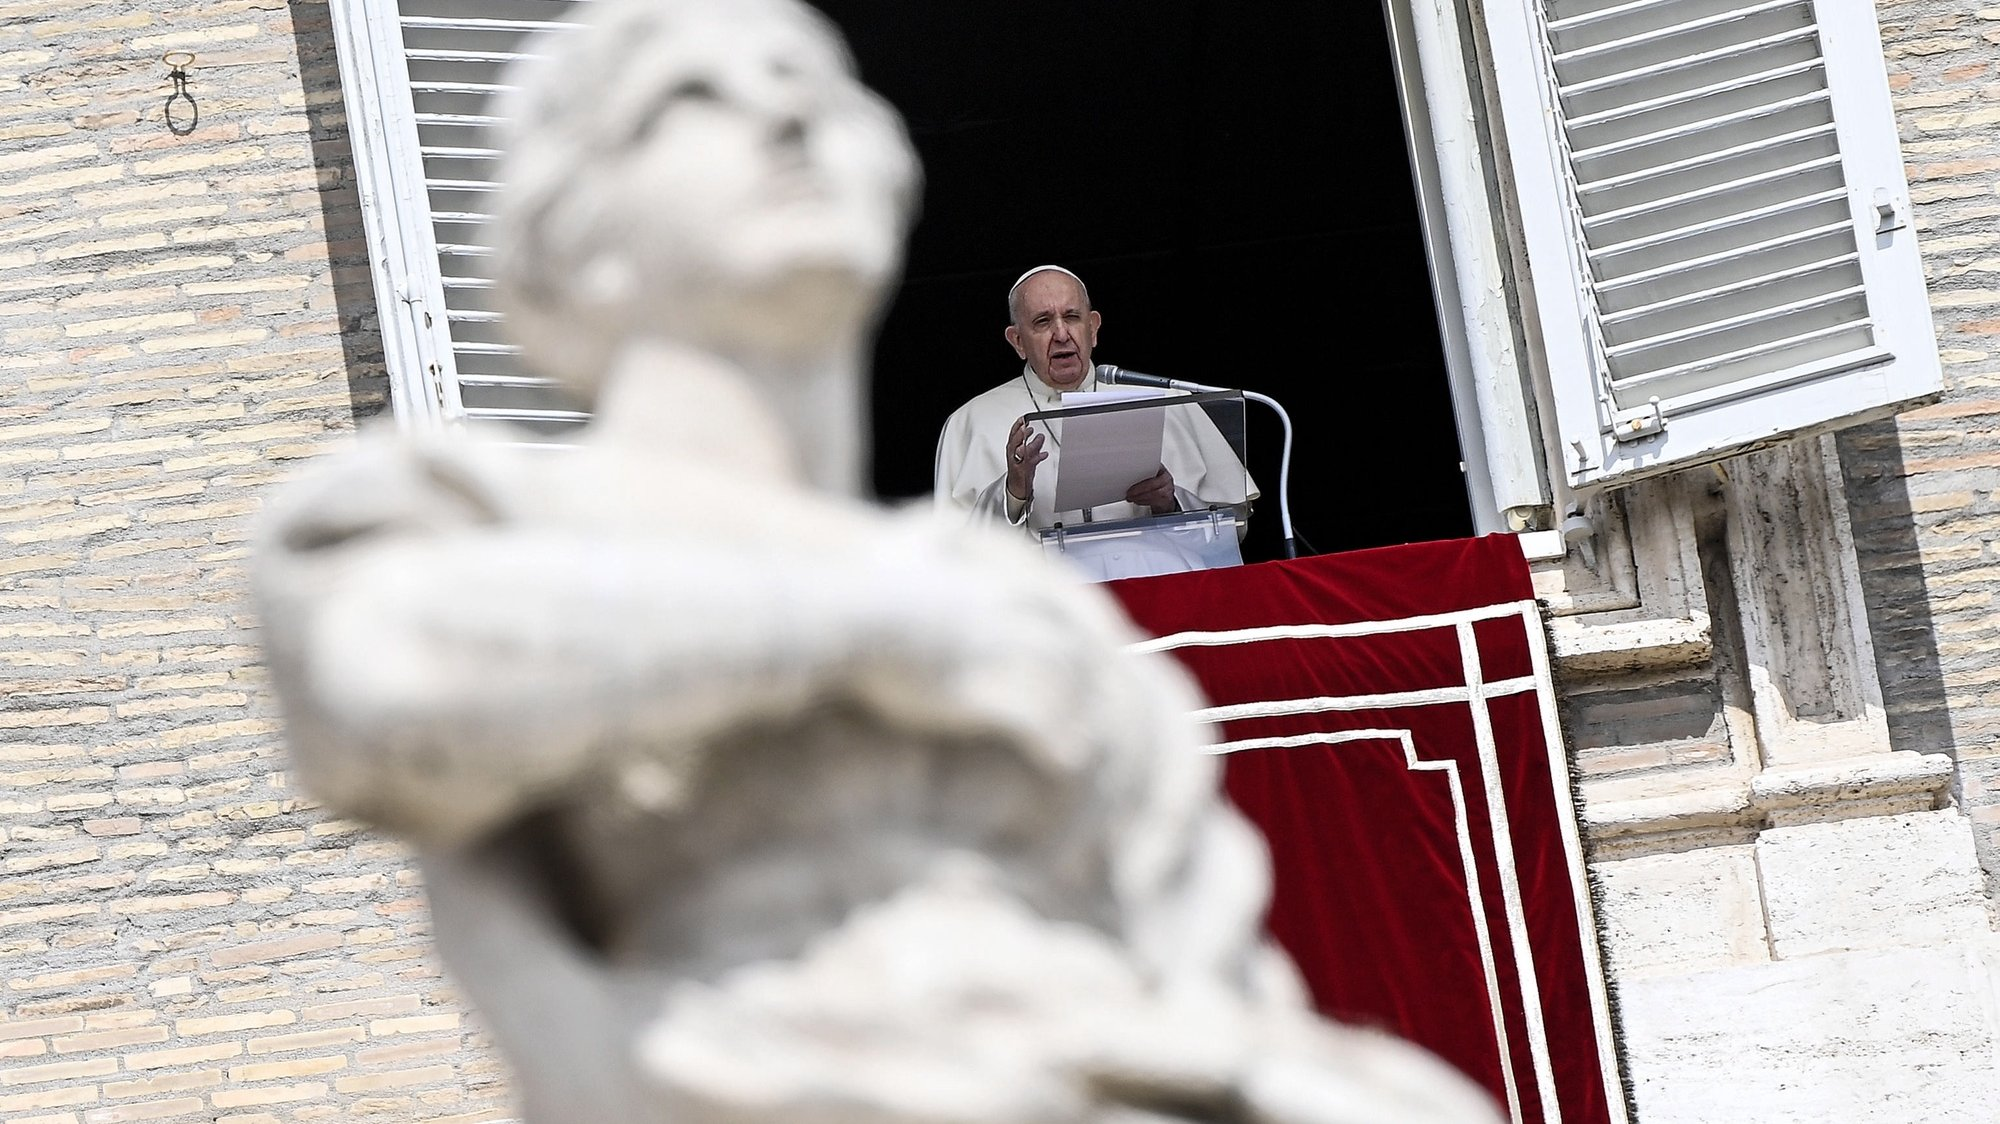 epa09142674 Pope Francis leads his Regina Coeli prayer from the window of his office overlooking Saint Peter's Square, Vatican City, Italy, 18 April 2021.  EPA/RICCARDO ANTIMIANI